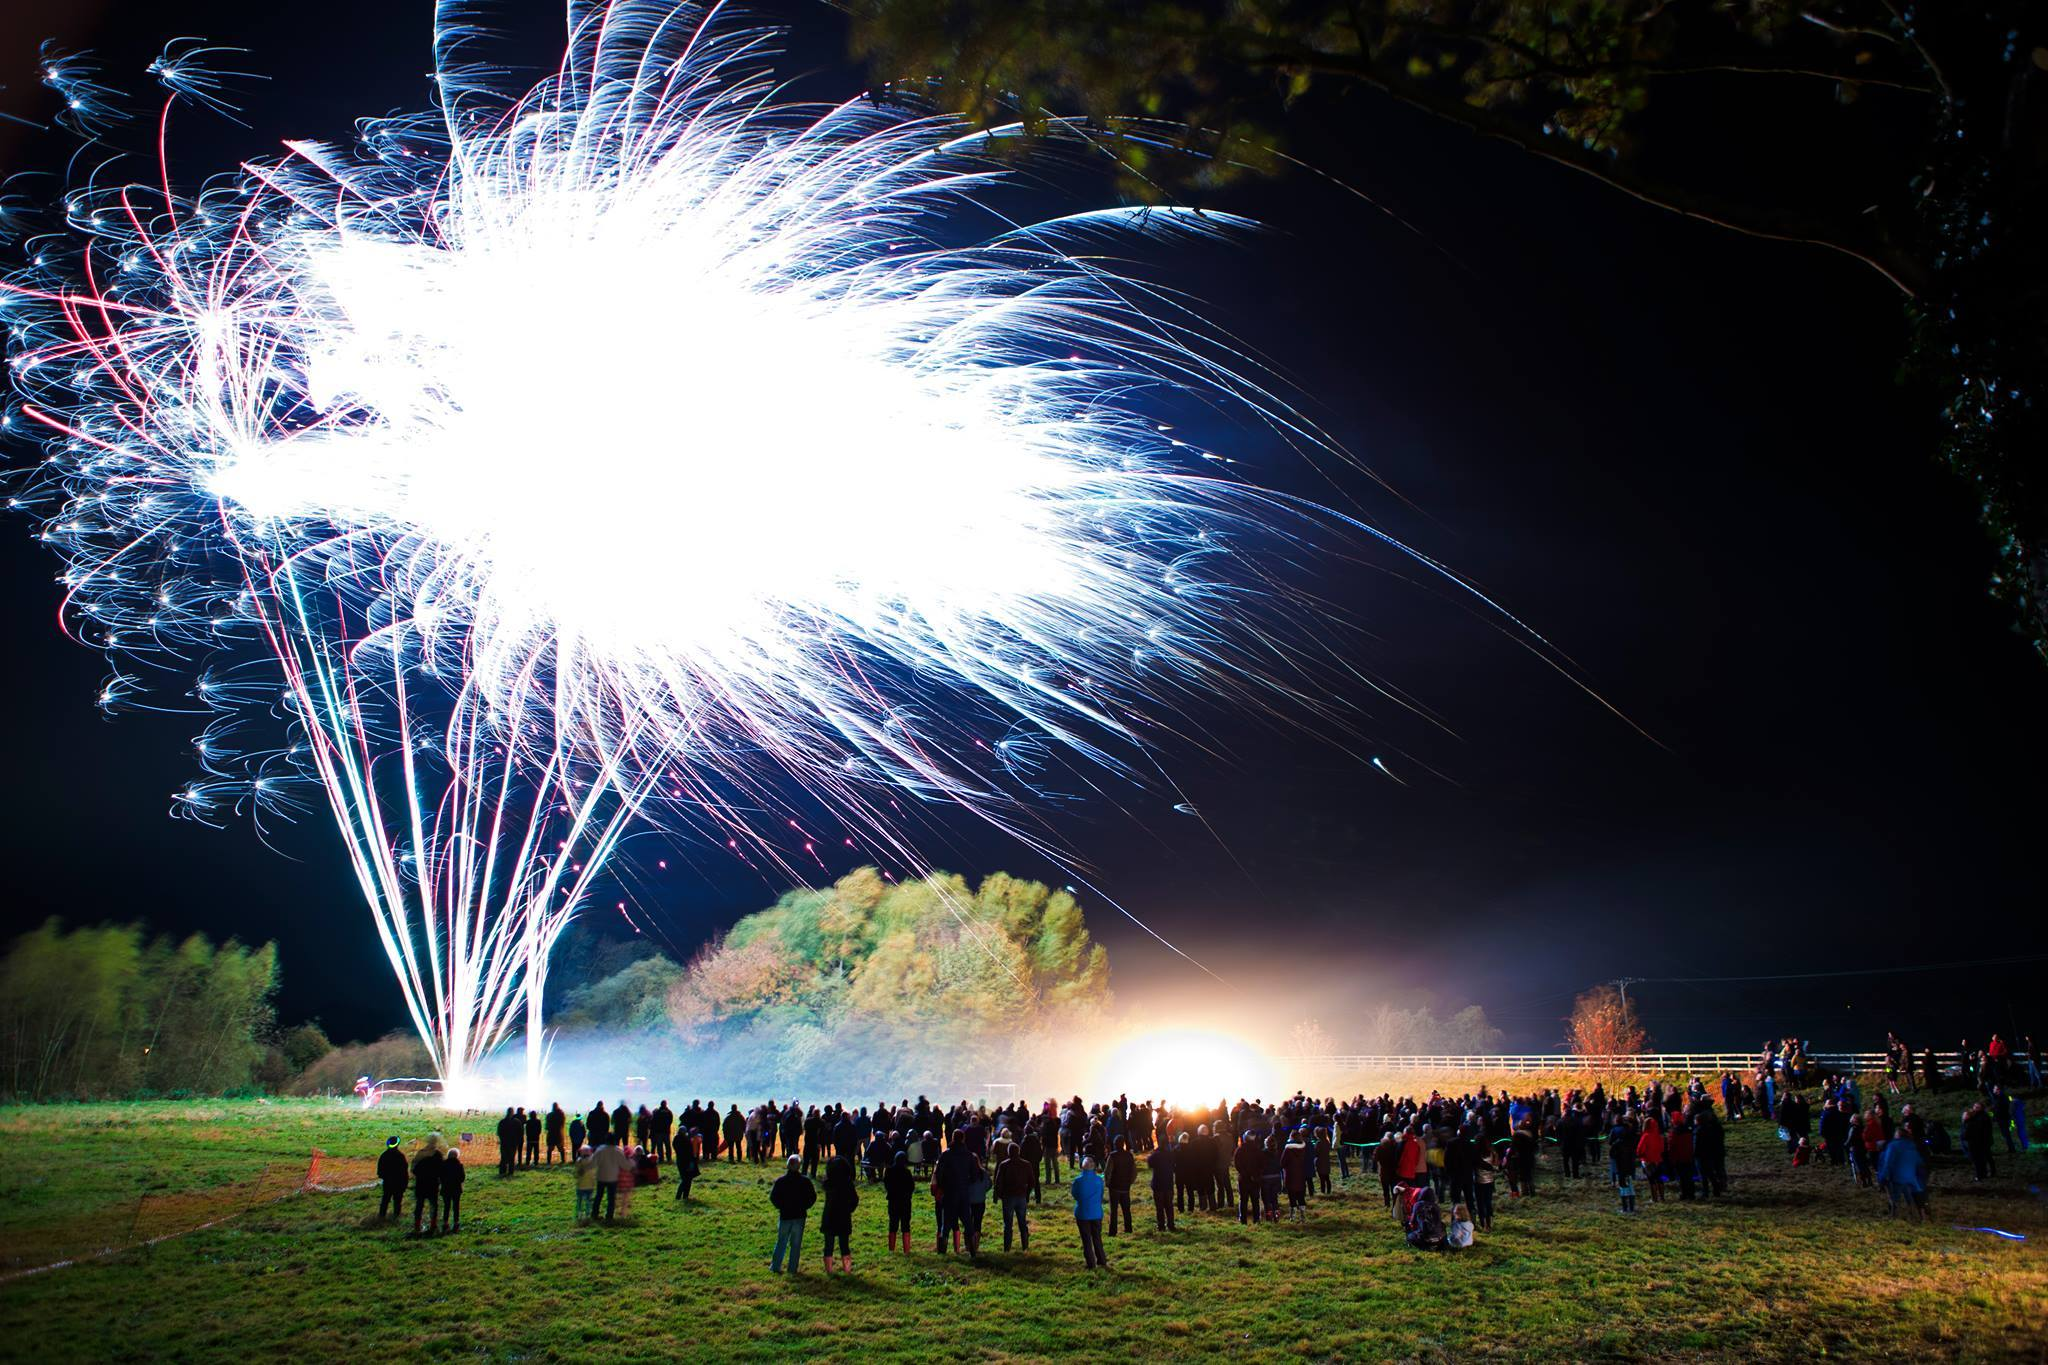 Simon Penson took this picture of the fireworks display at Helperby